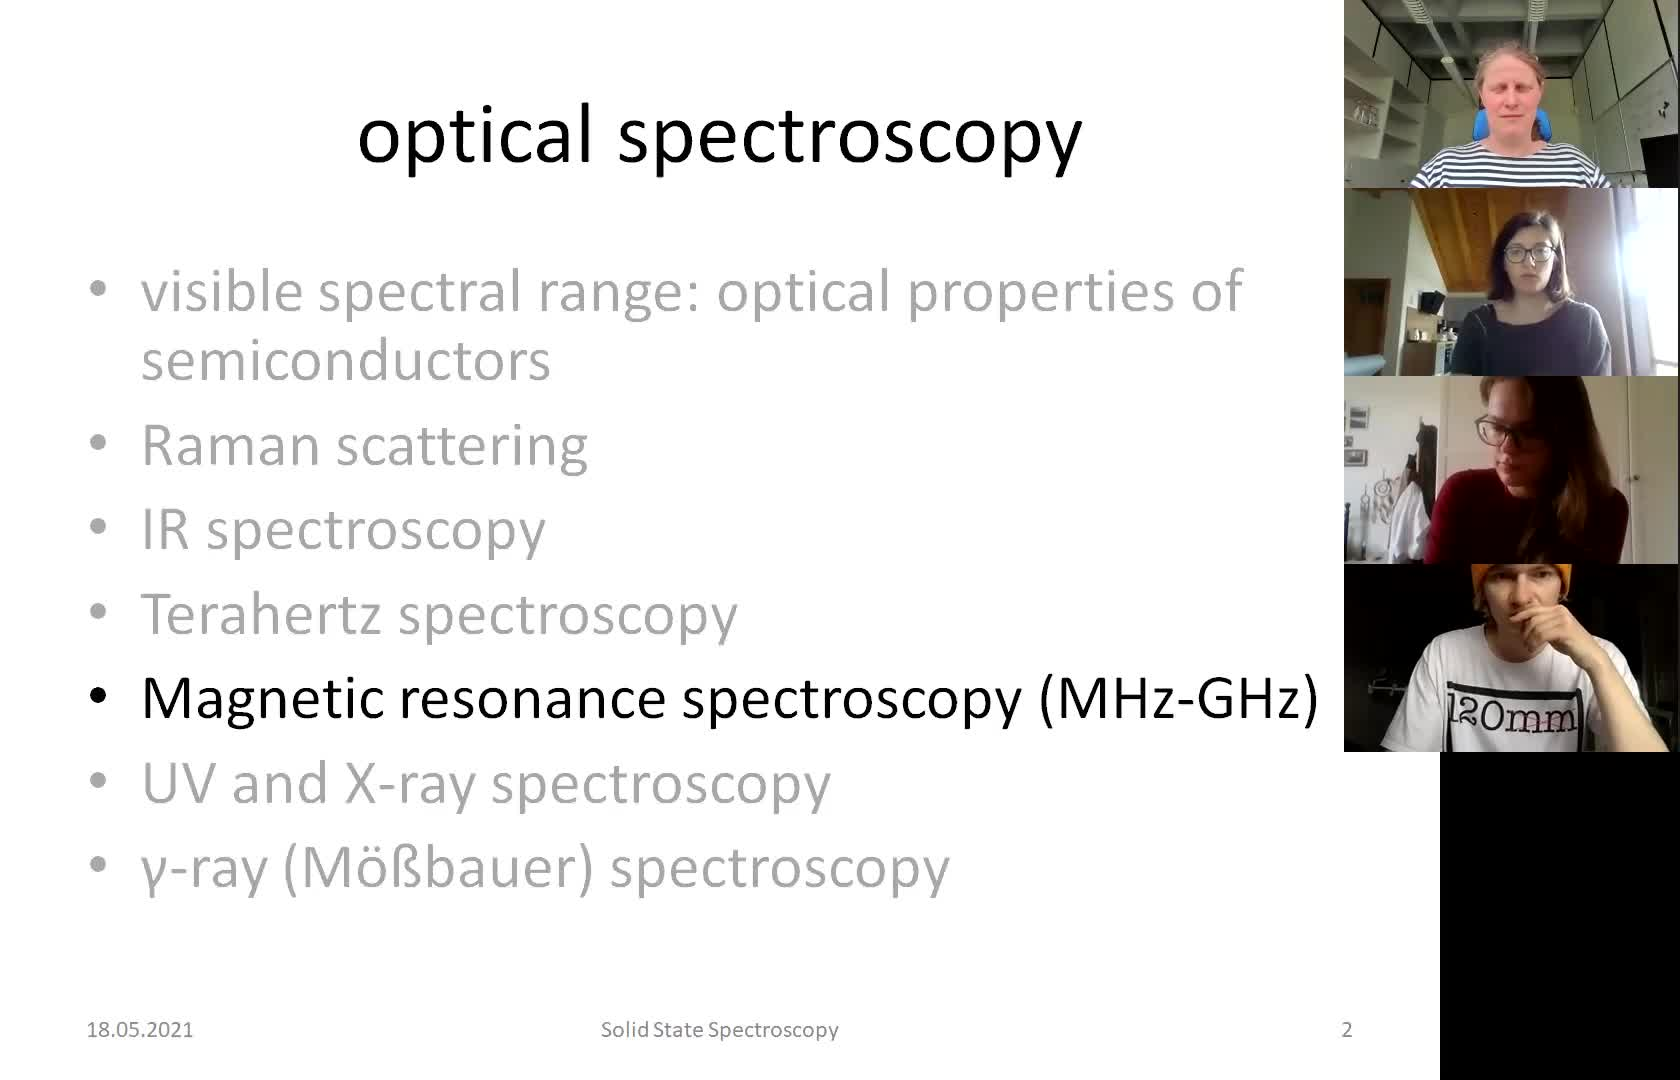 Solid State Spectroscopy 20210518: Magnetic Resonance Spectroscopy, X-ray Spectroscopy